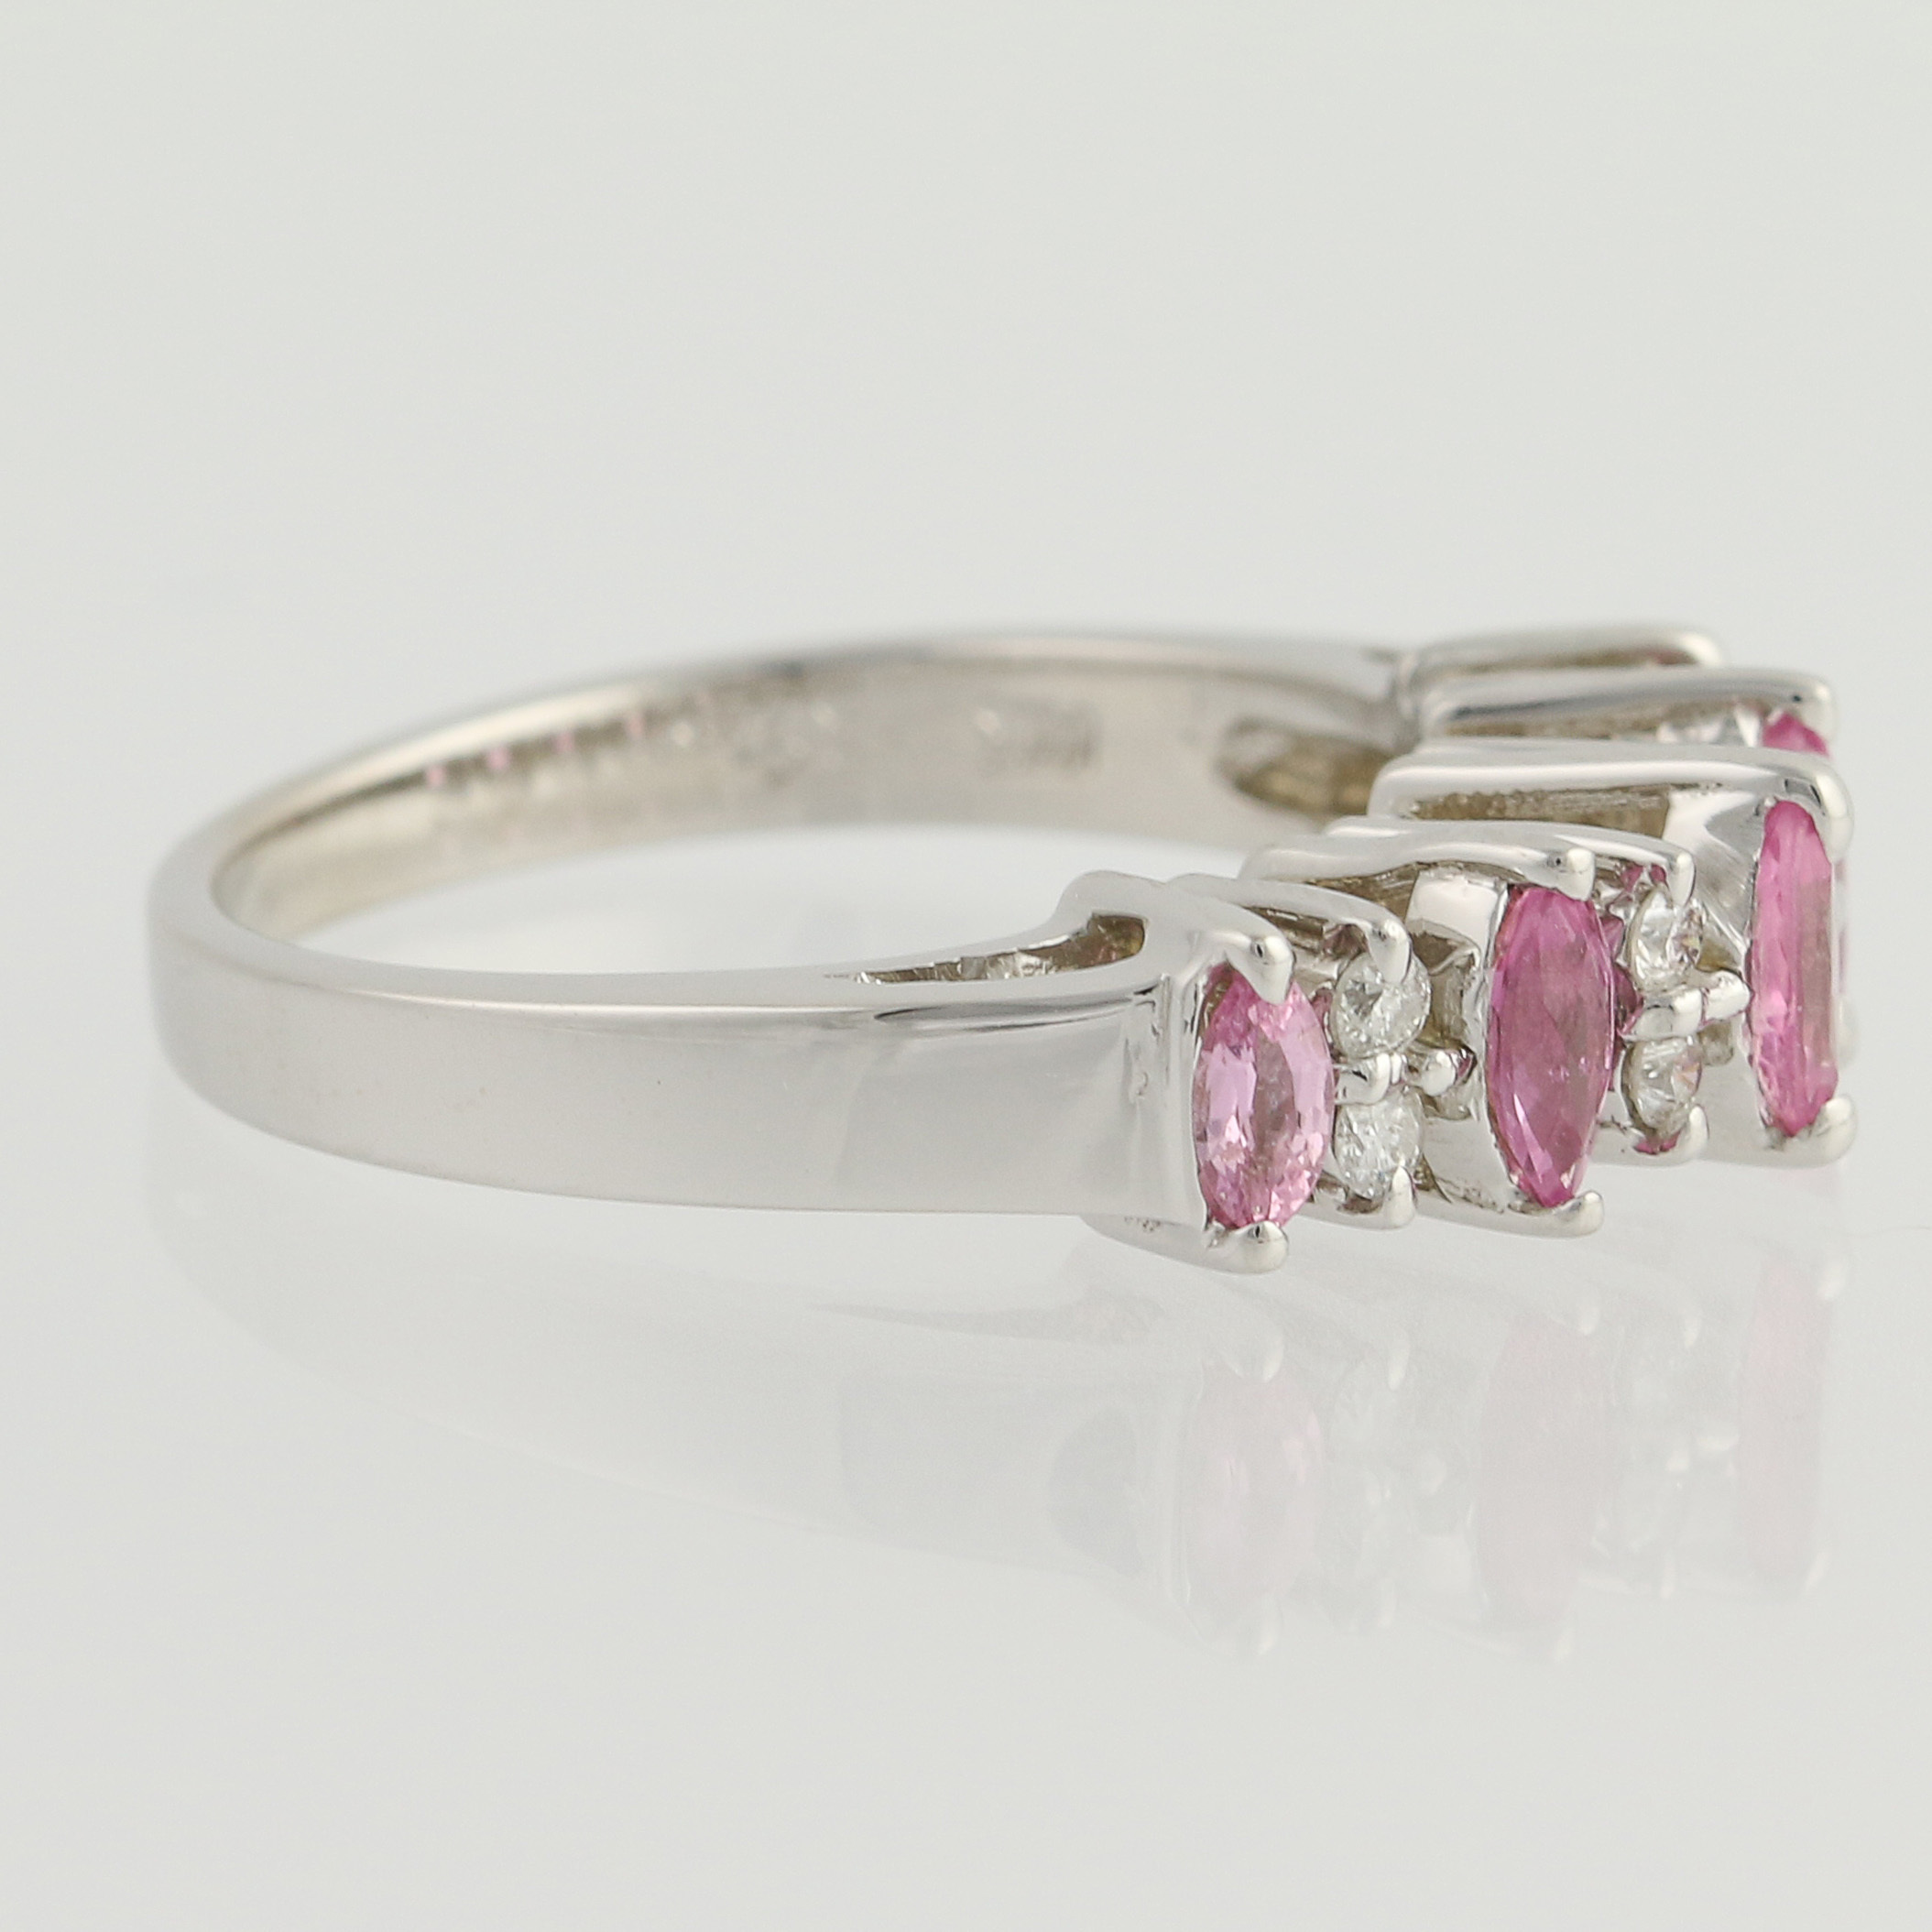 tiered pink sapphire diamond ring 14k white gold. Black Bedroom Furniture Sets. Home Design Ideas